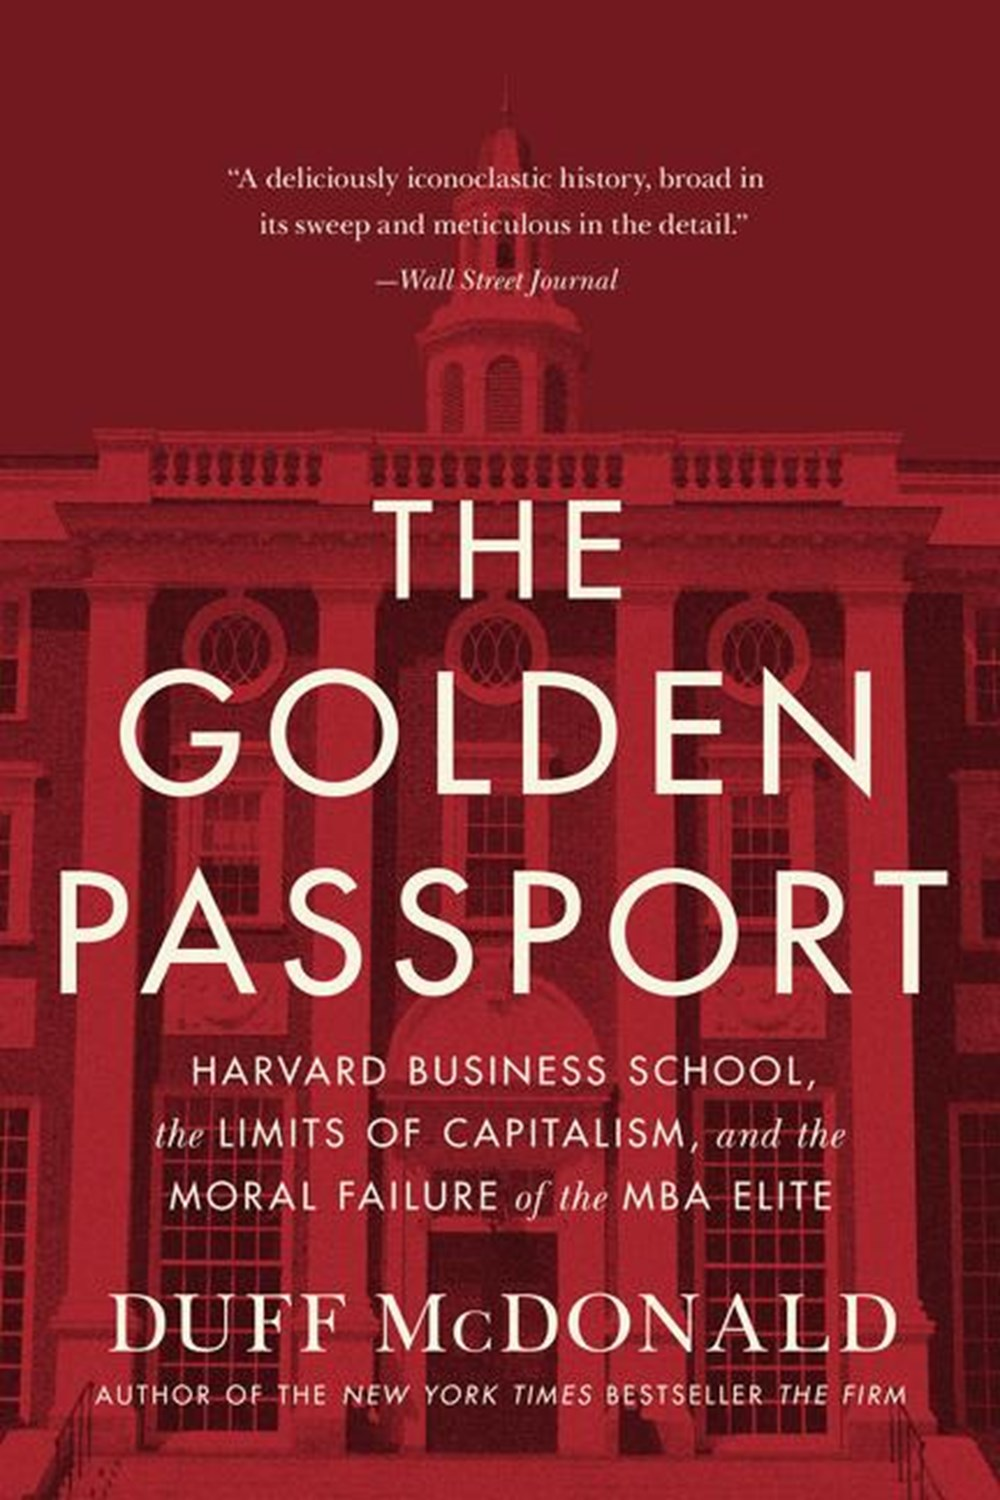 Golden Passport Harvard Business School, the Limits of Capitalism, and the Moral Failure of the MBA